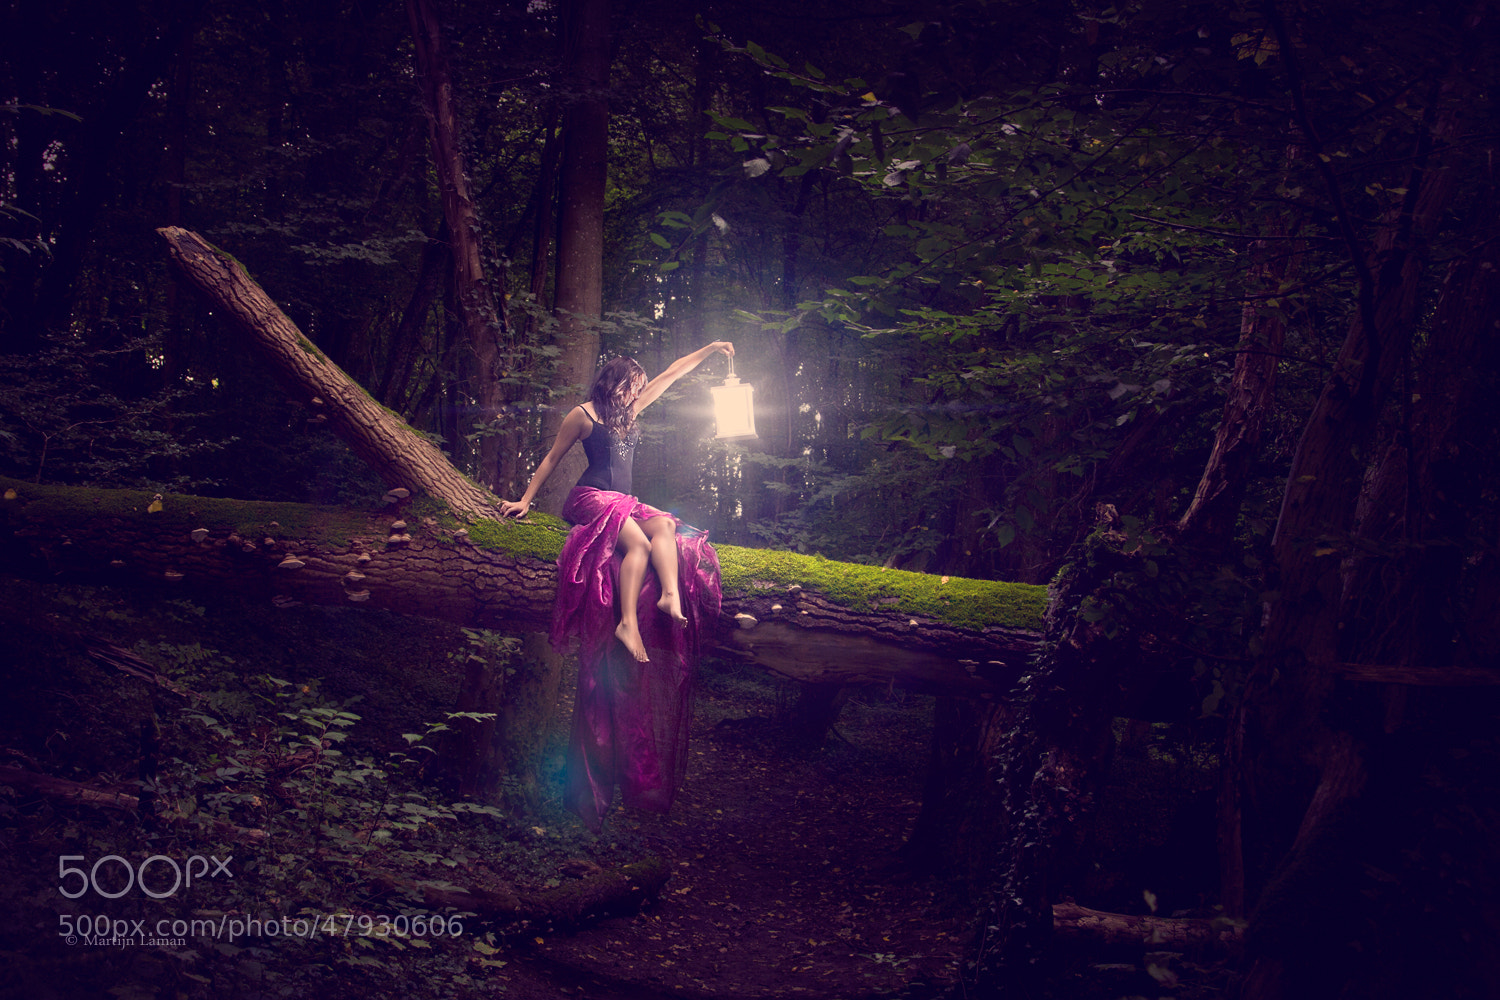 Photograph Forest Fairy by Martijn Laman on 500px